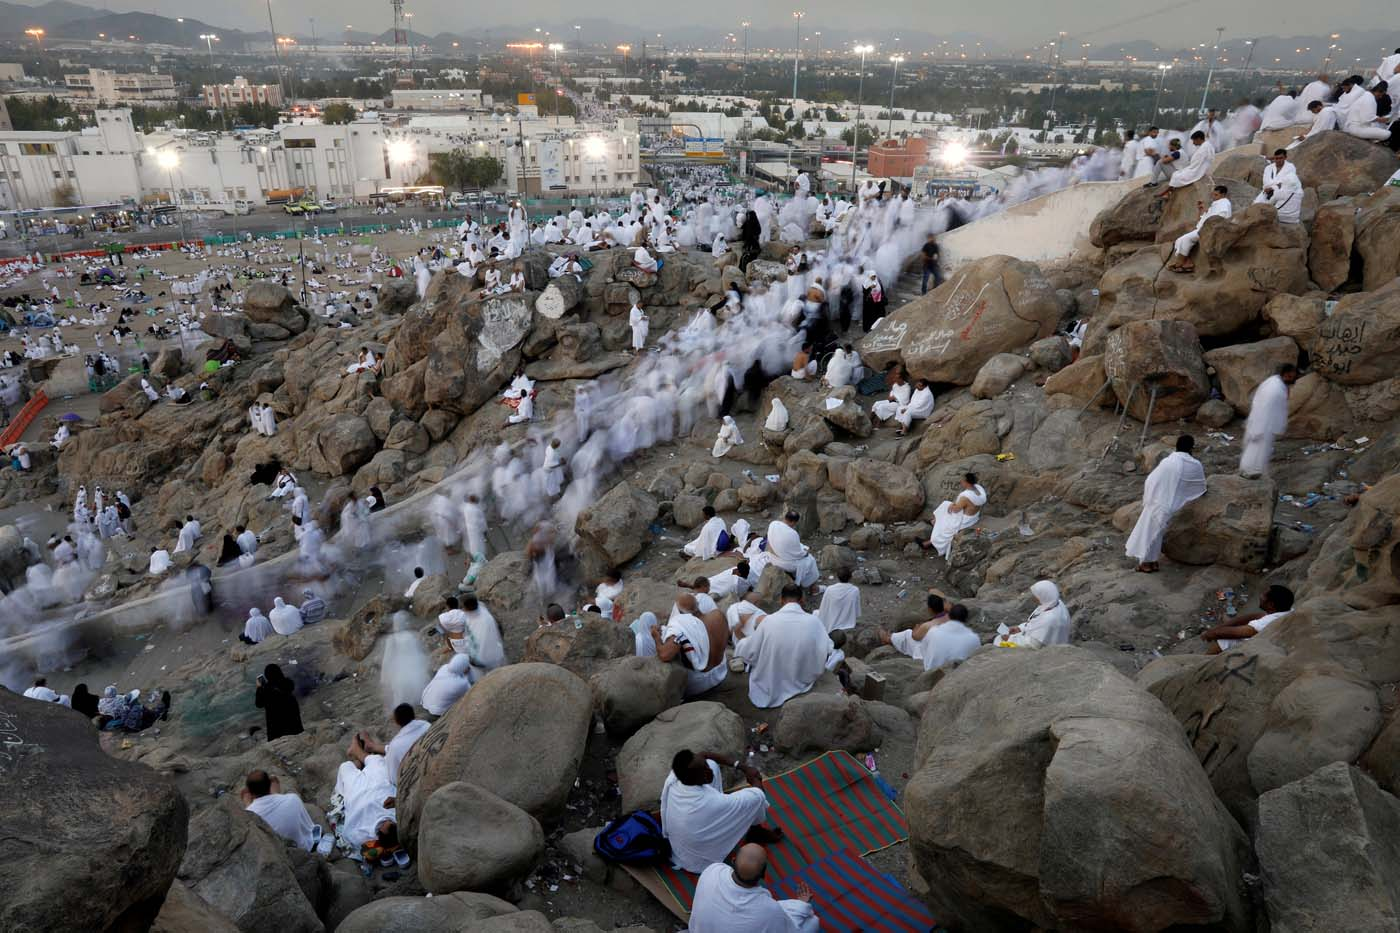 Muslim pilgrims gather on Mount Mercy on the plains of Arafat during the annual haj pilgrimage, outside the holy city of Mecca, Saudi Arabia August 31, 2017.  REUTERS/Suhaib Salem     TPX IMAGES OF THE DAY